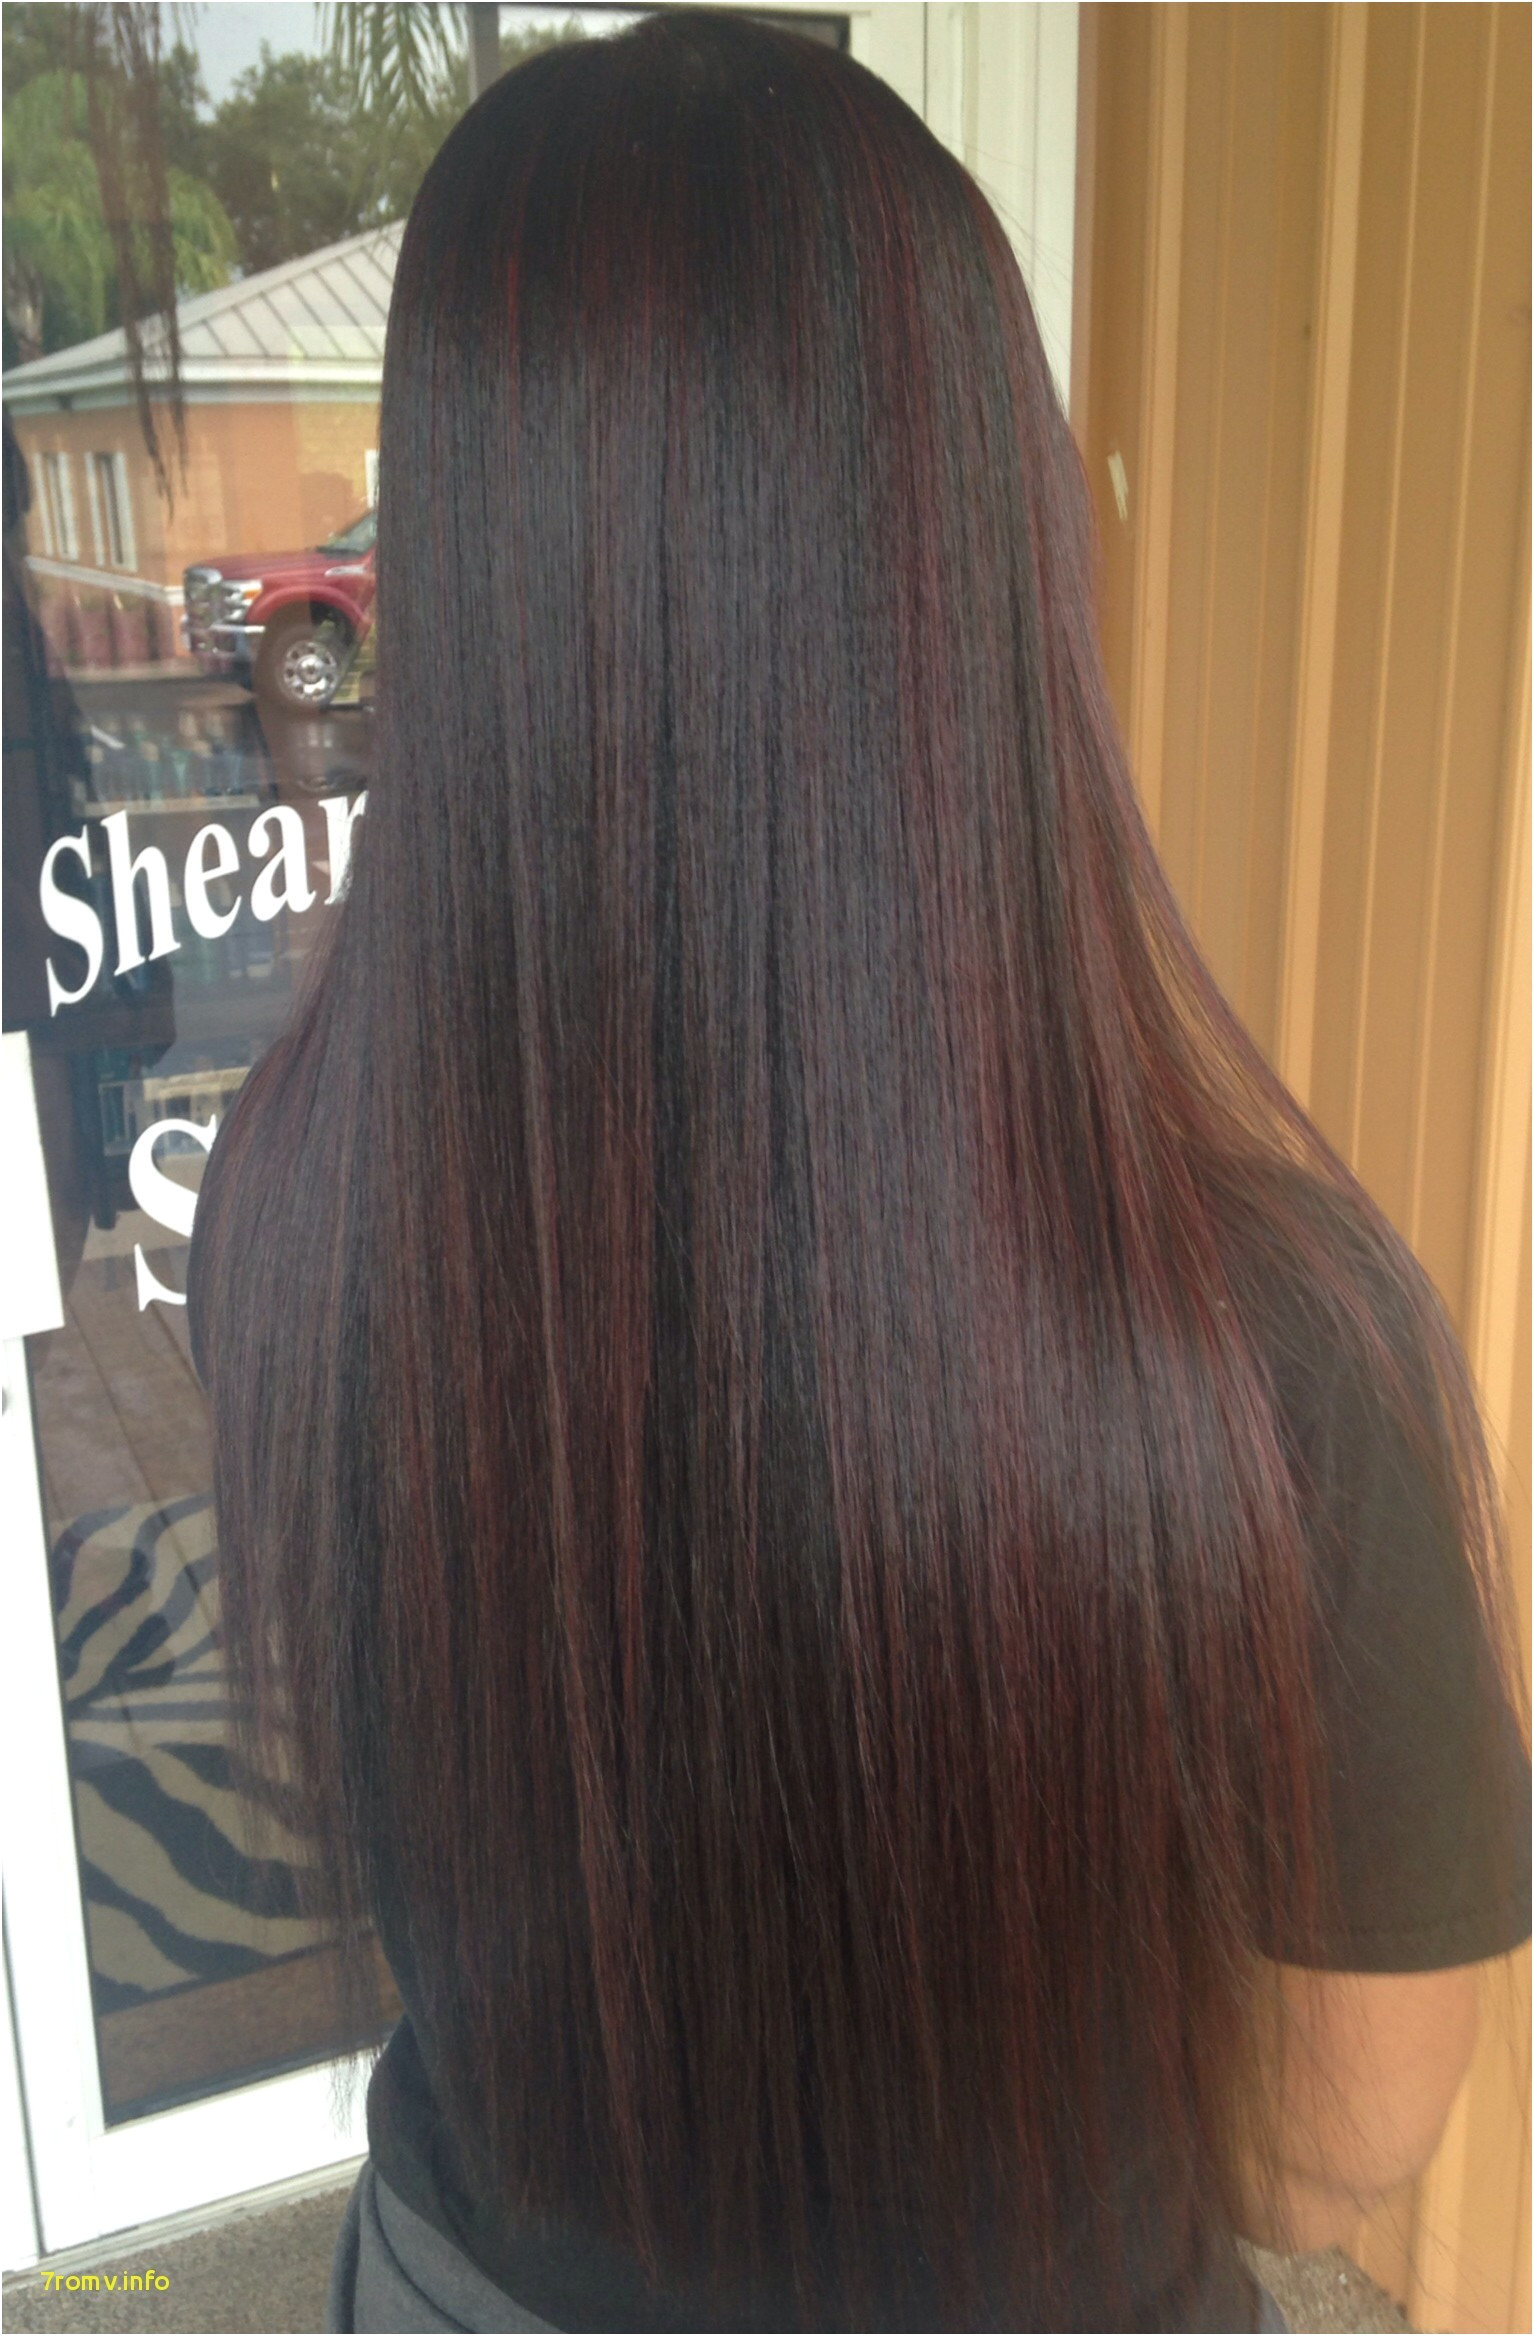 Long Hair Stylist Luxury 41 Lovely Hairstyles to Hide Thinning Hair Long Hair Stylist Unique